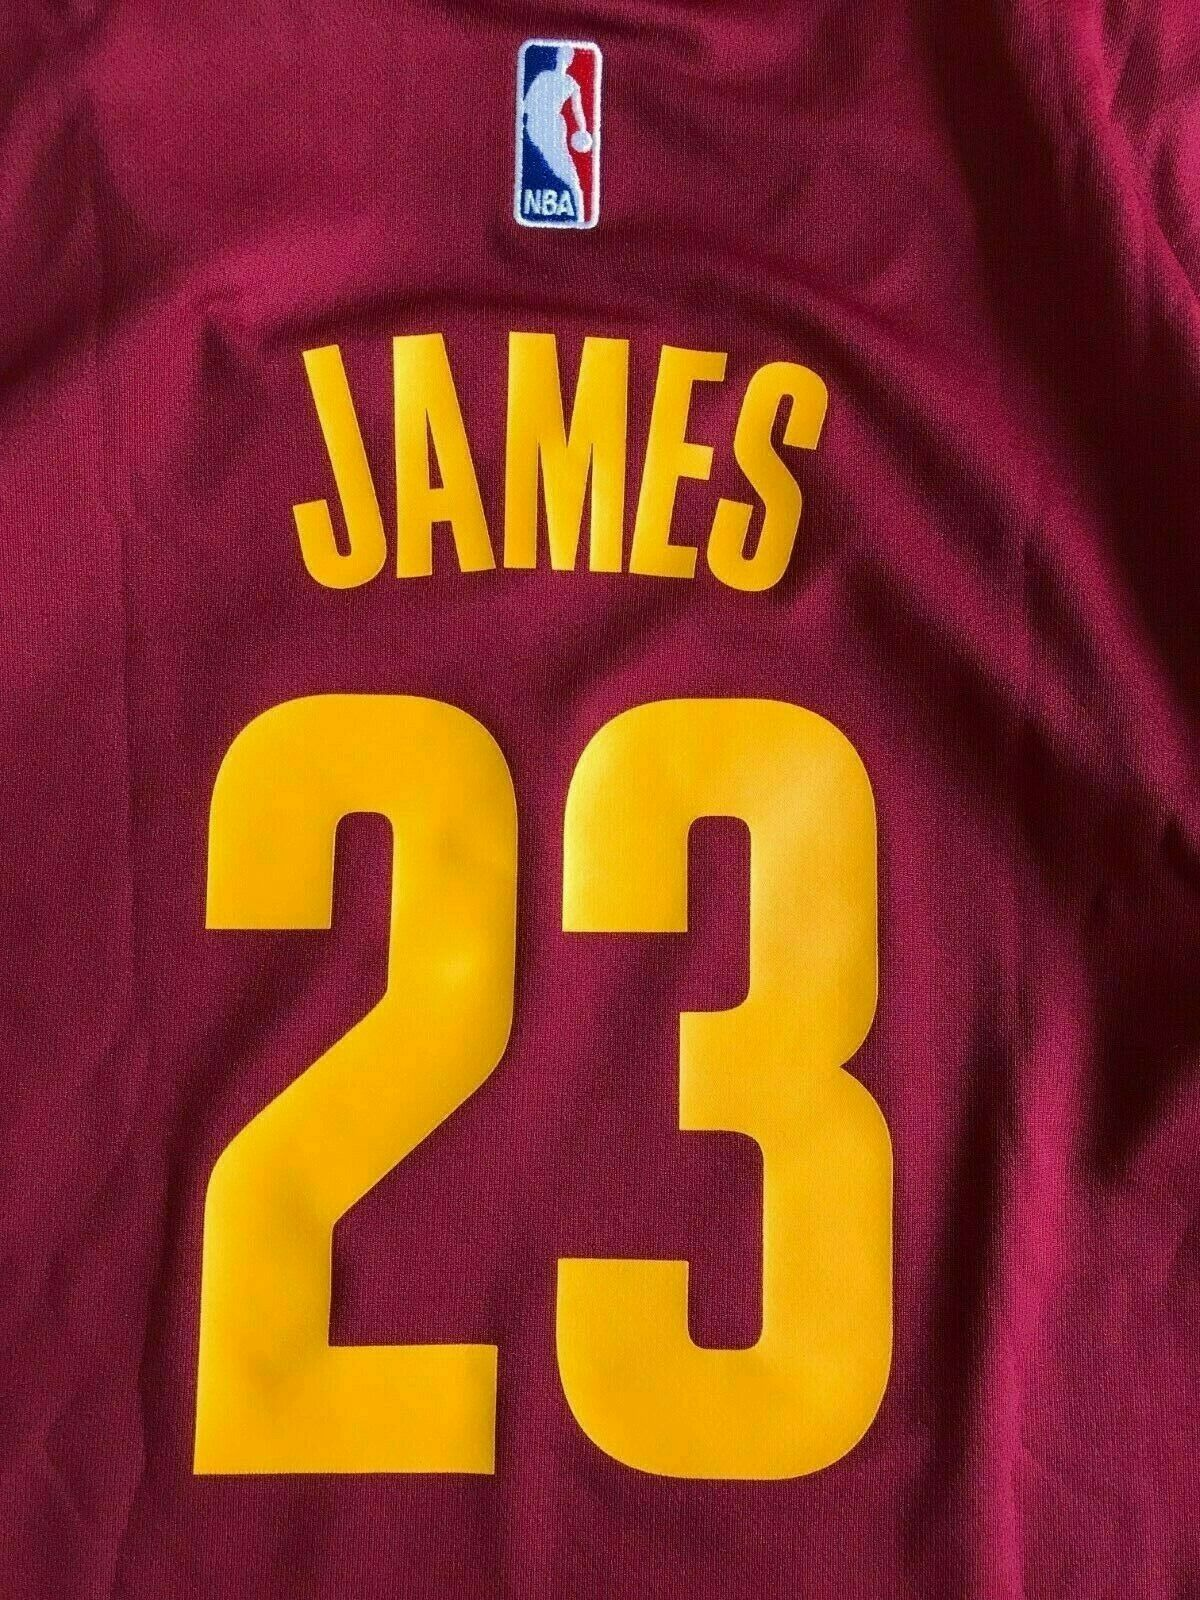 Cleveland Cavaliers #23 LeBron James Size M Adidas jersey